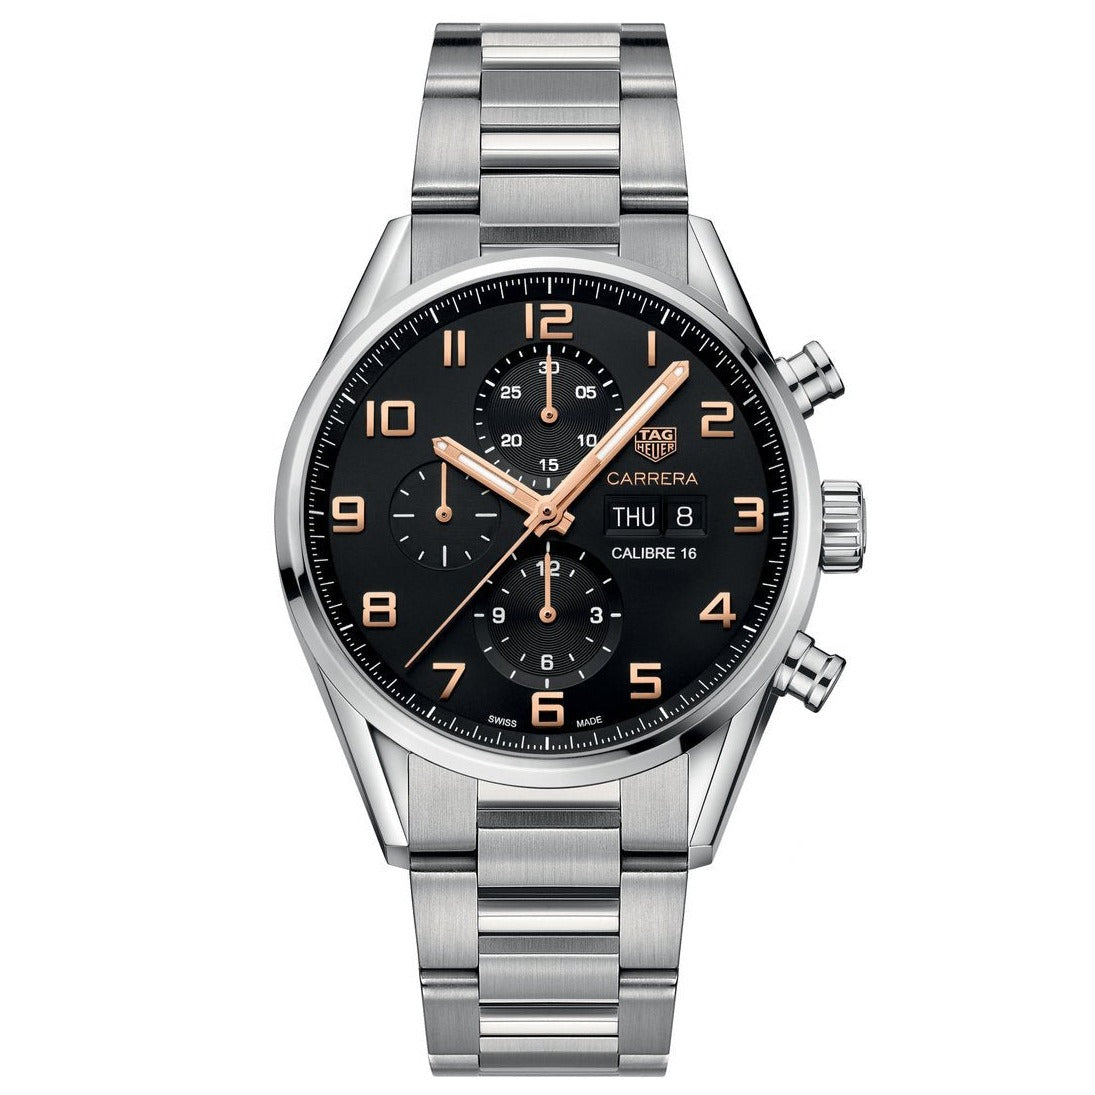 TAG Heuer Men's Carrera Automatic Calibre 16 Chronograph Black Dial Bracelet Strap Watch